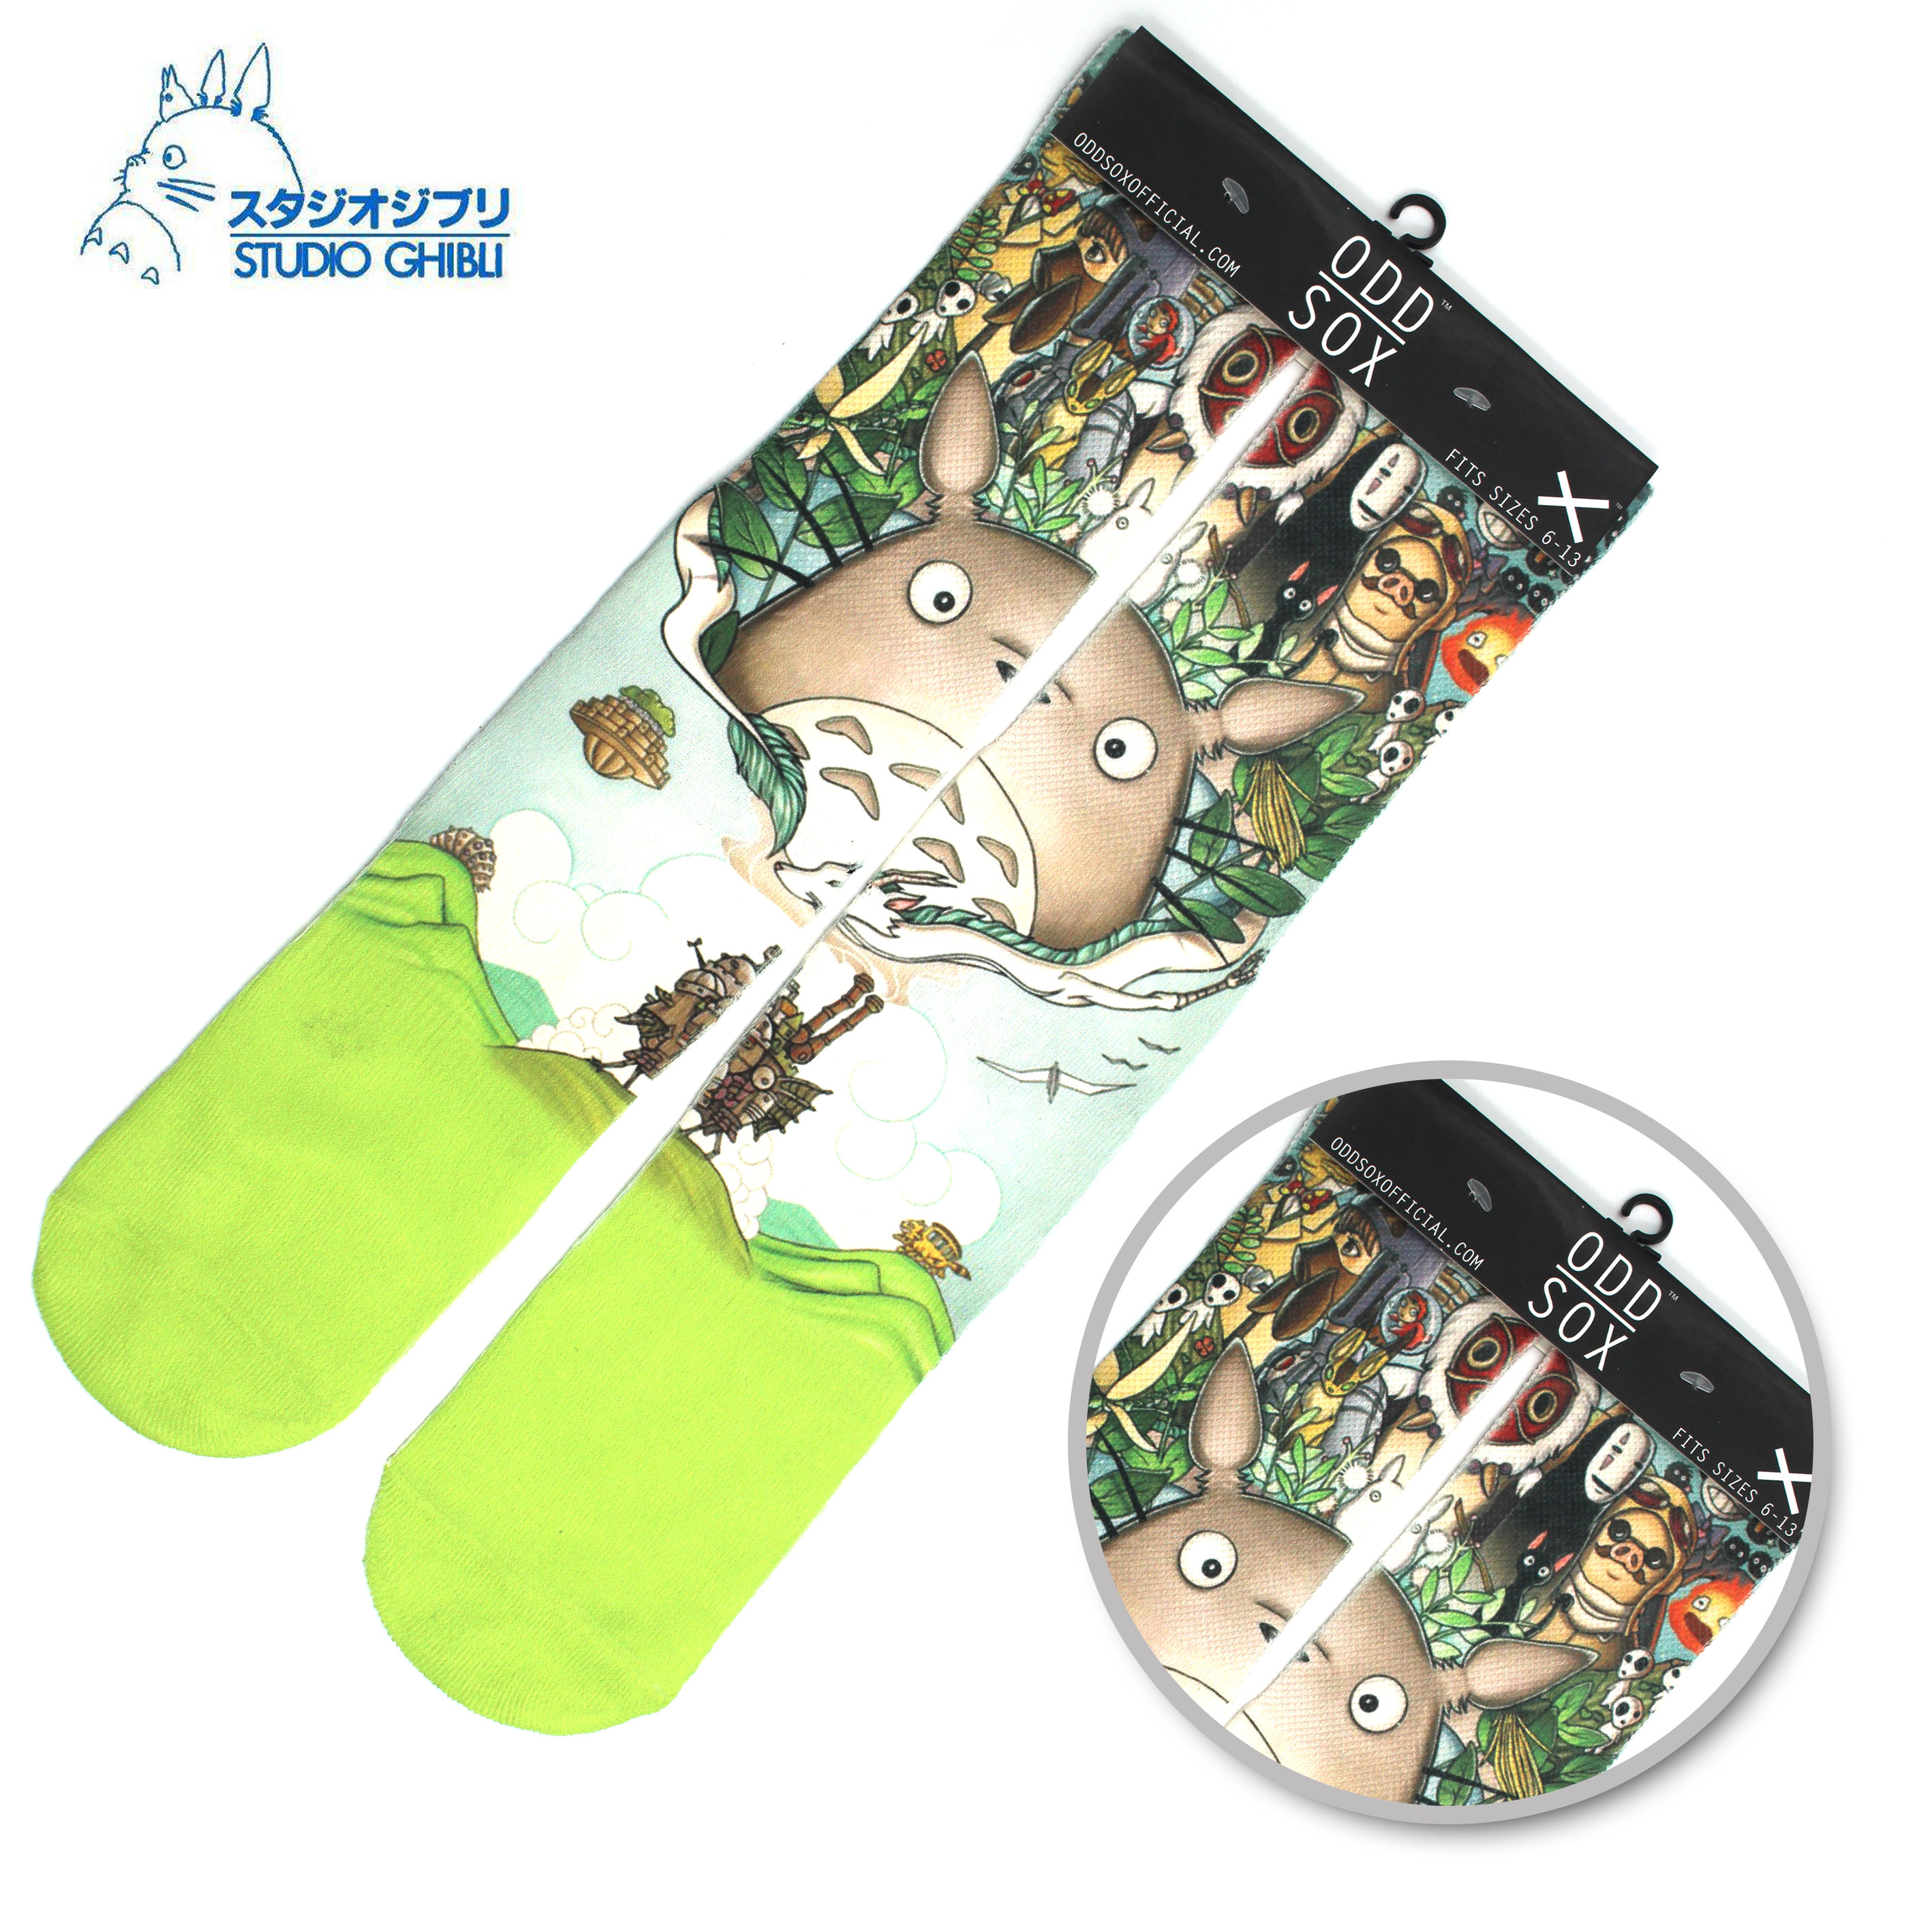 "4x16"" Anime Ghibli My Neighbor Totoro Mei Kusakabe Catbus Cotton Socks Colorful Stockings Warm Tights Cartoon Fashion Gifts"